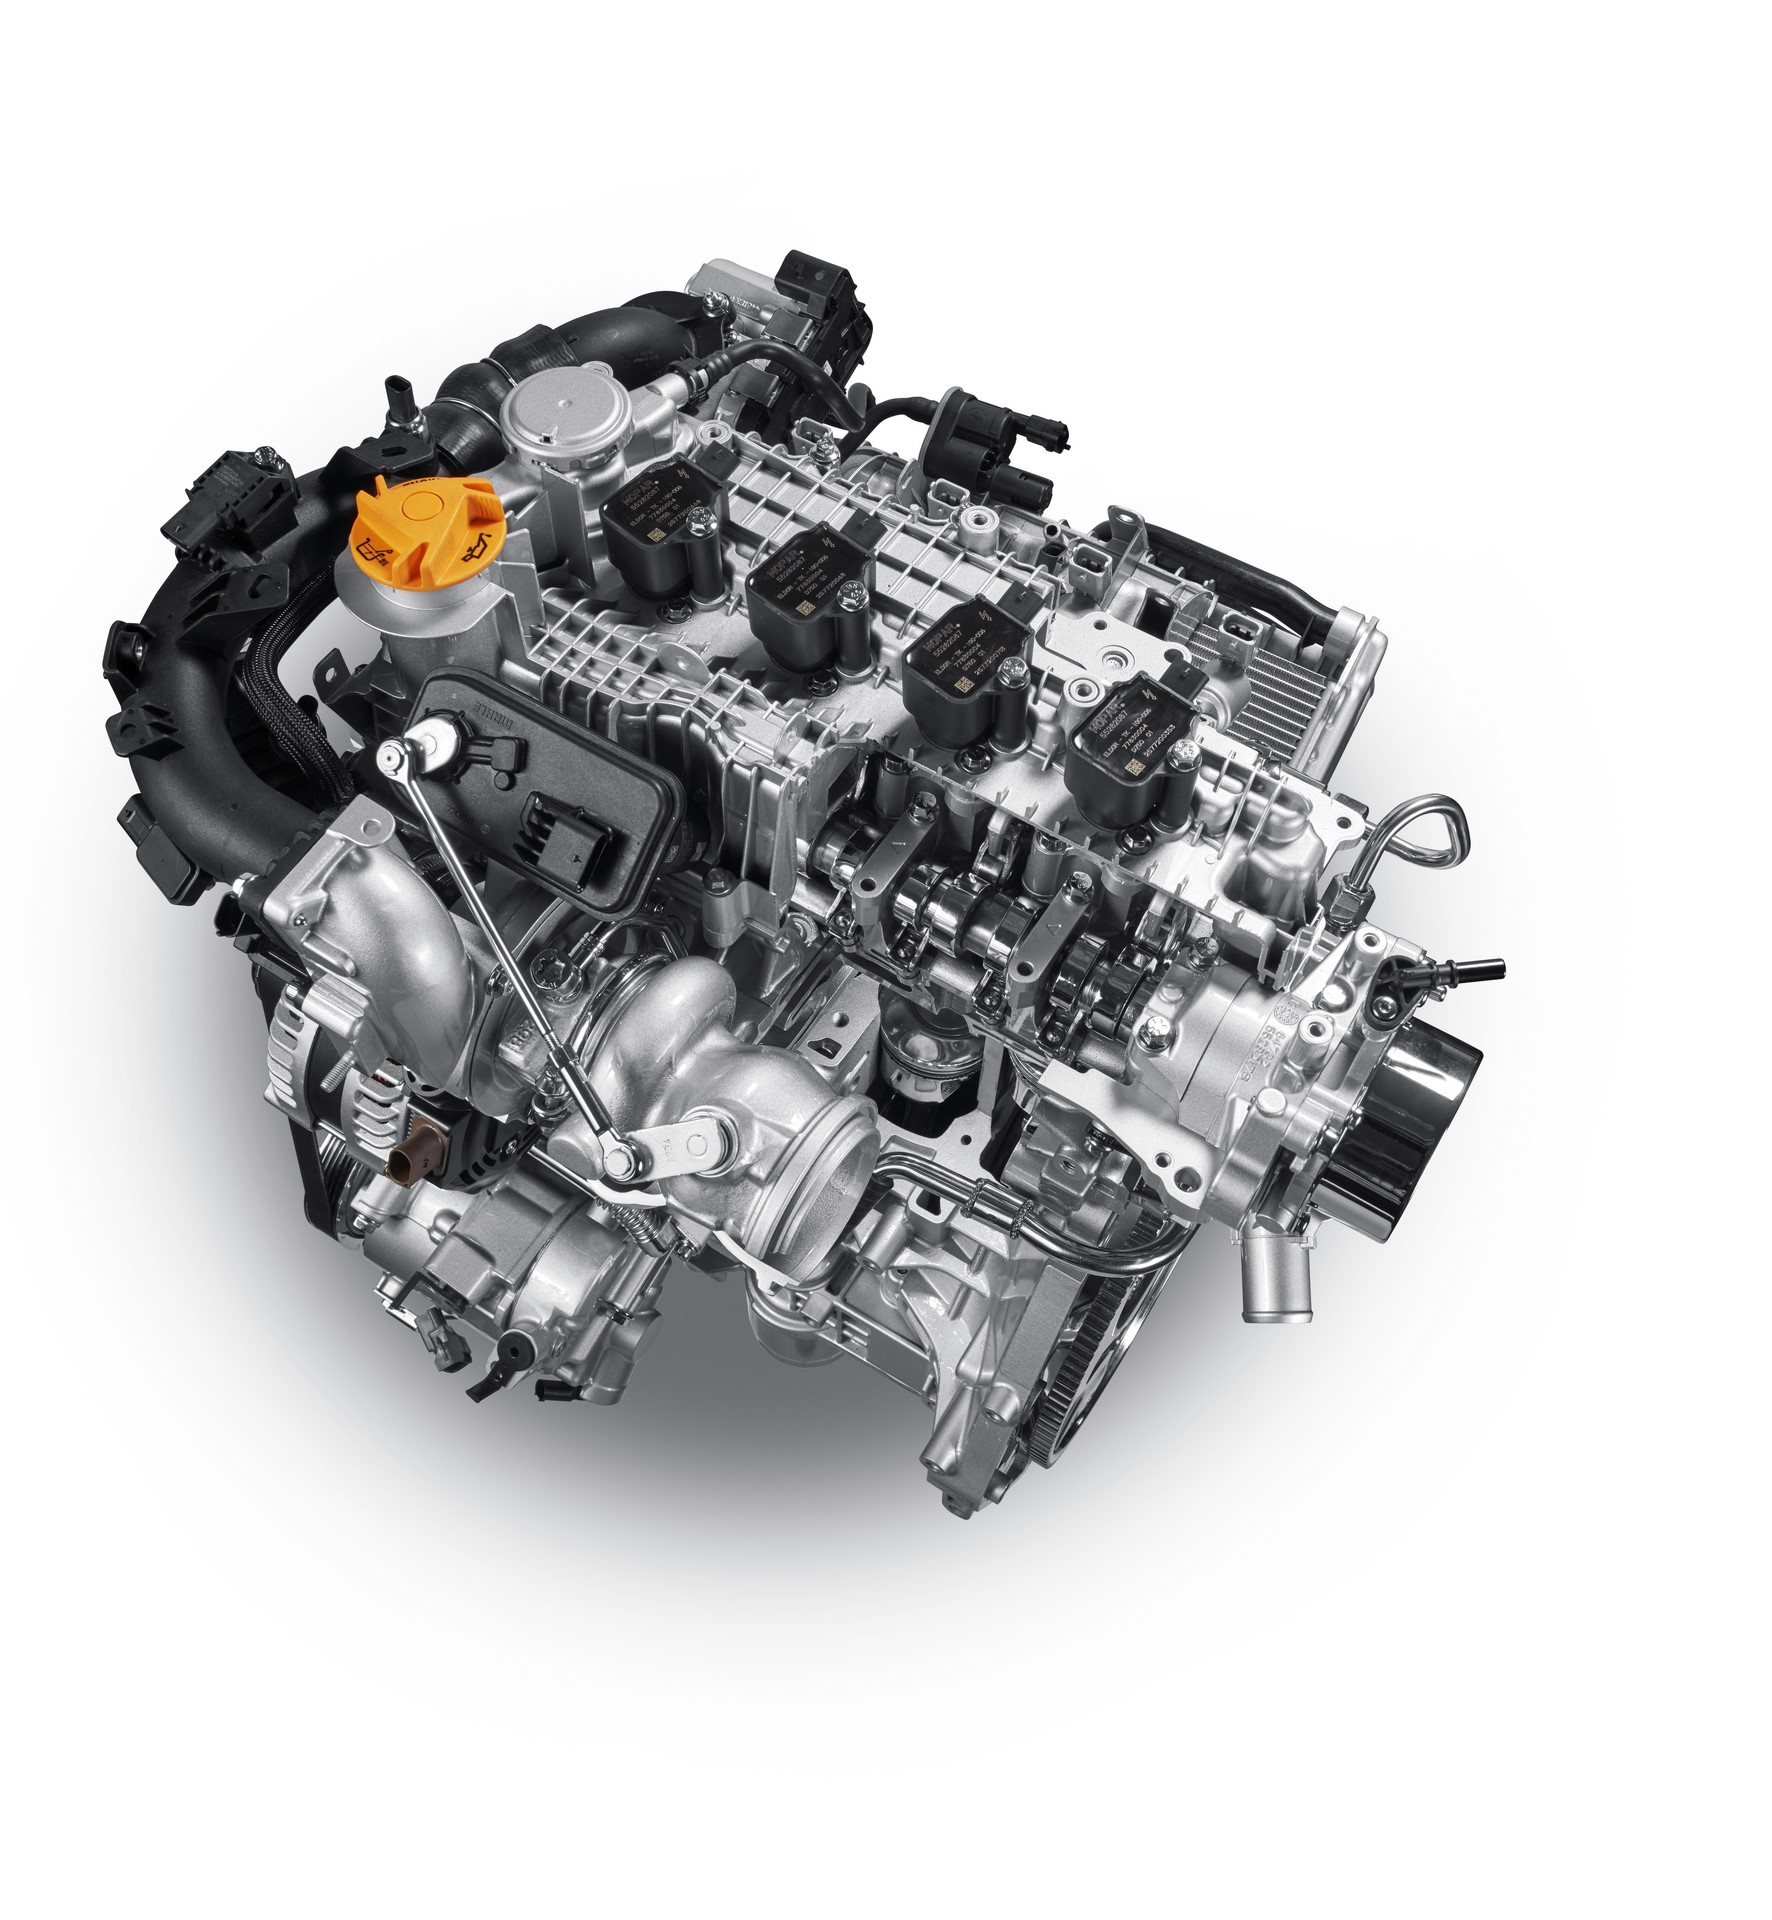 New-13L-Turbo-4-cylinder-150HP_17